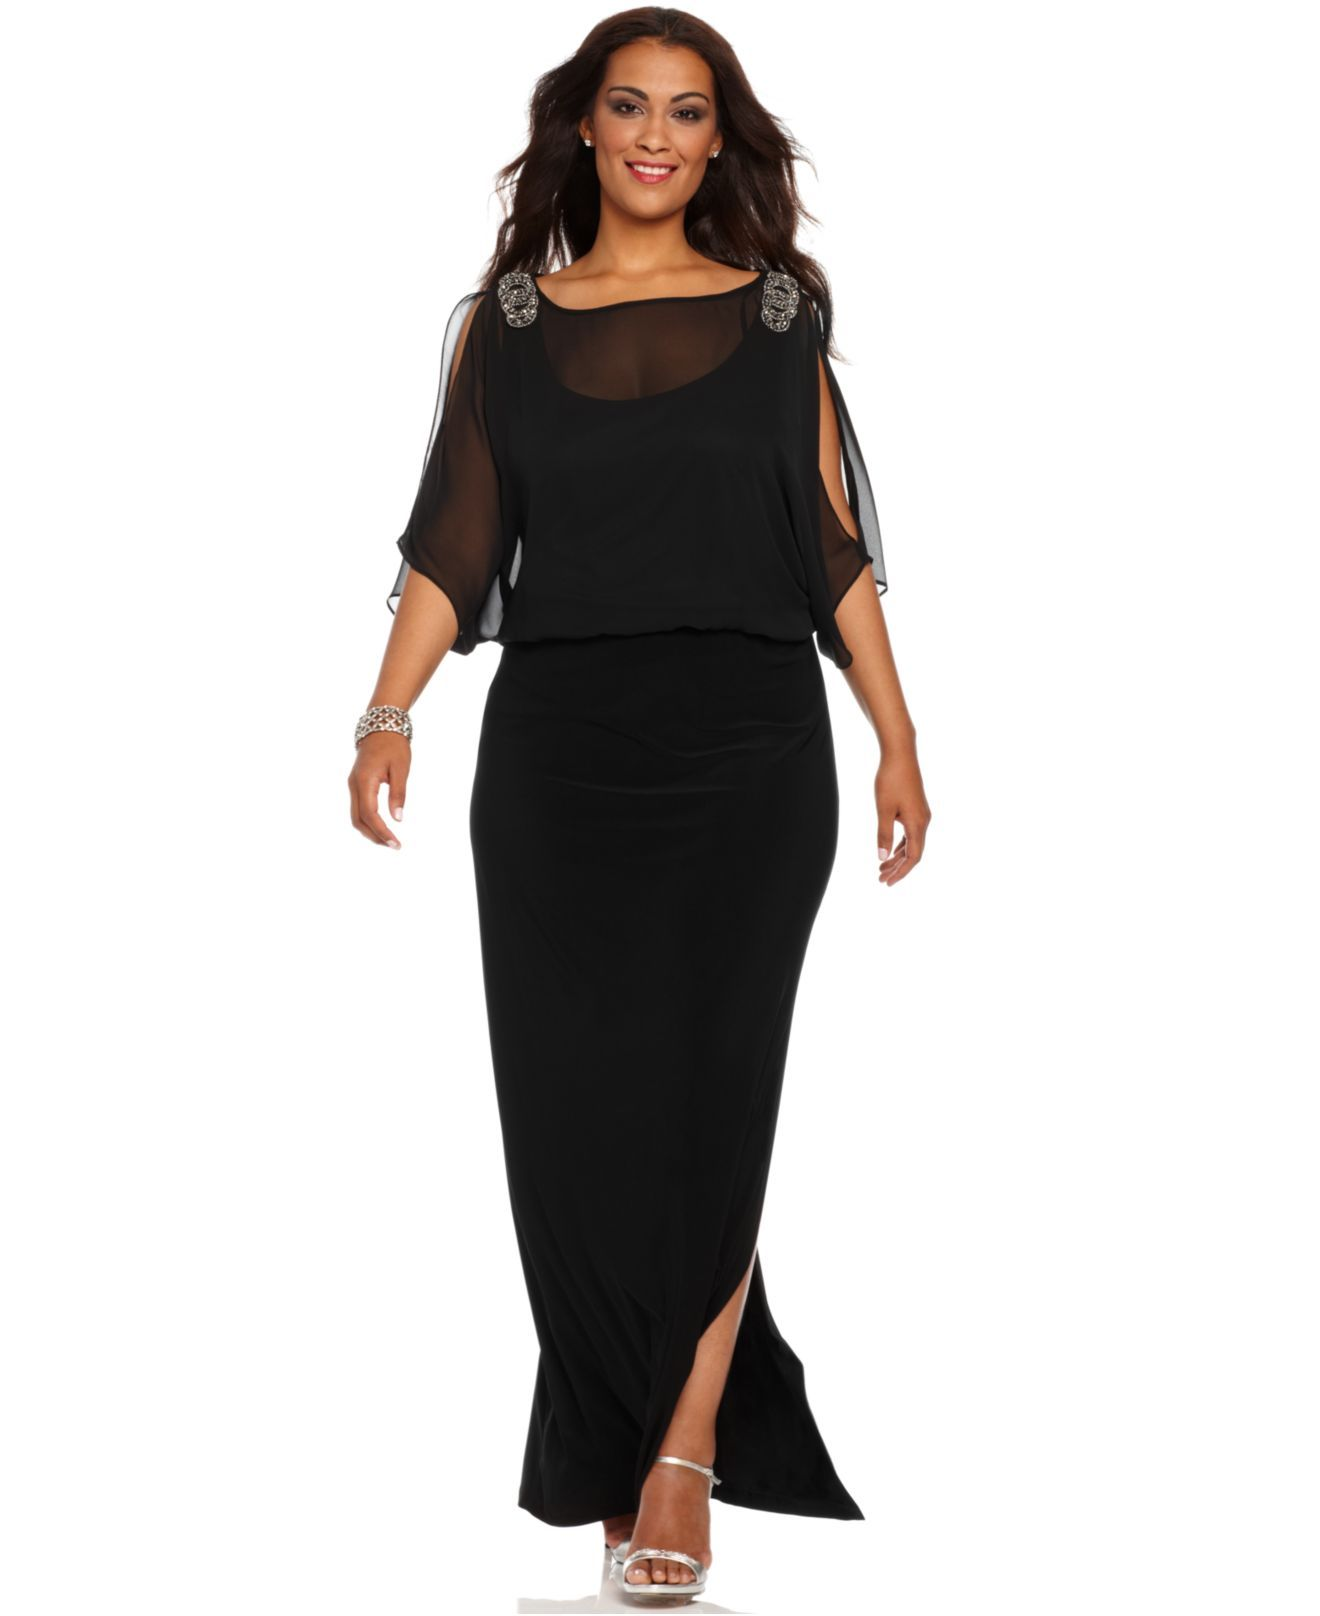 Macys Plus Size Evening Gowns Insaatmcpgroupco